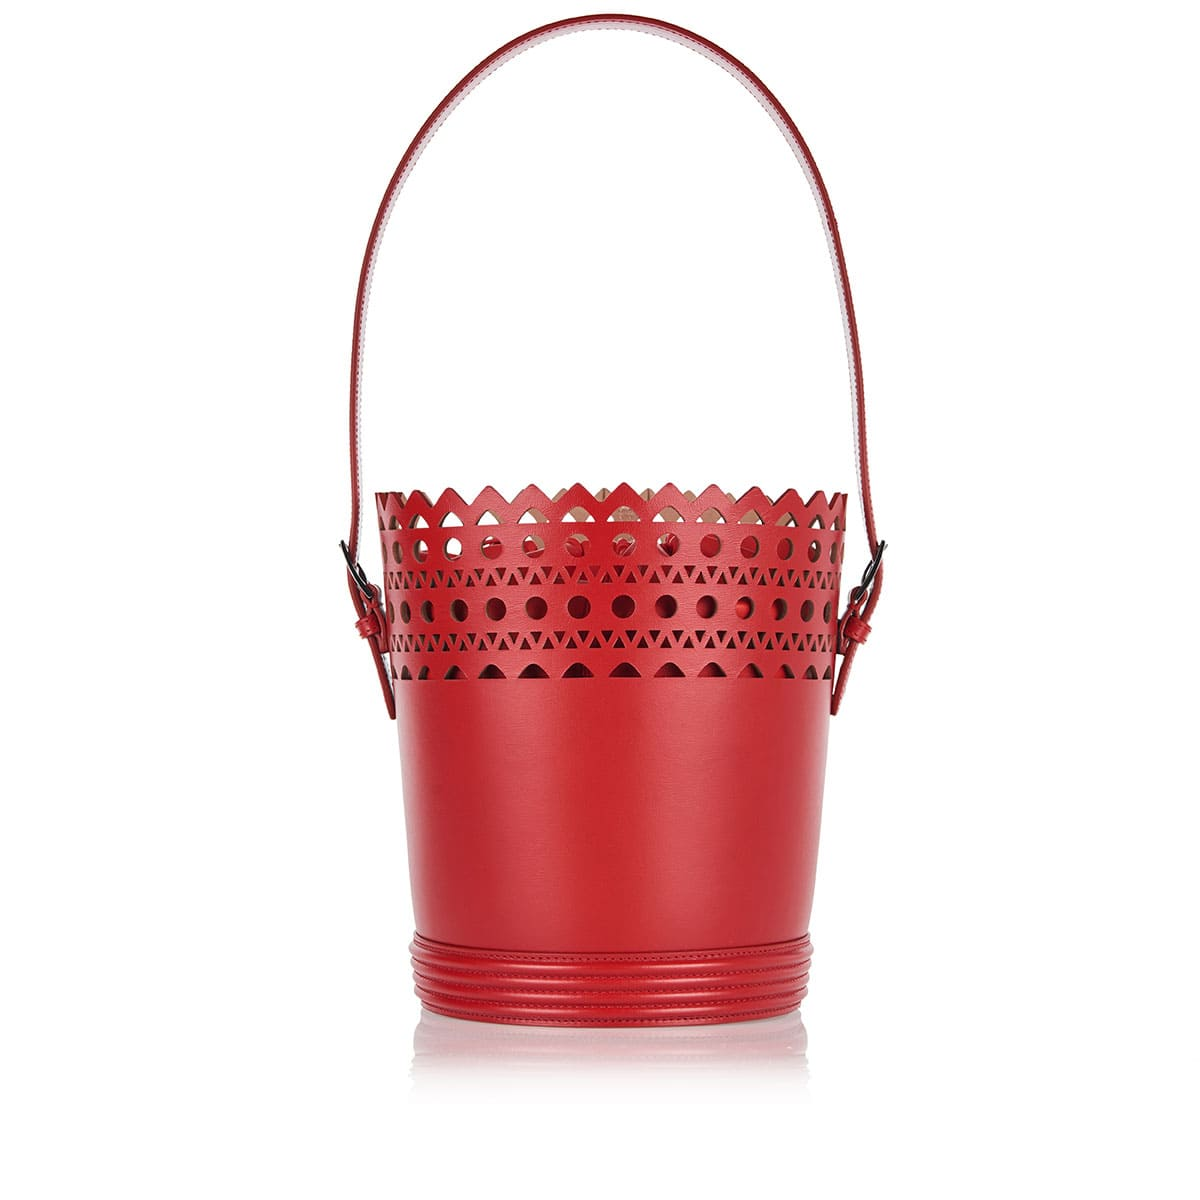 Edition 1992 laser-cut leather bucket bag